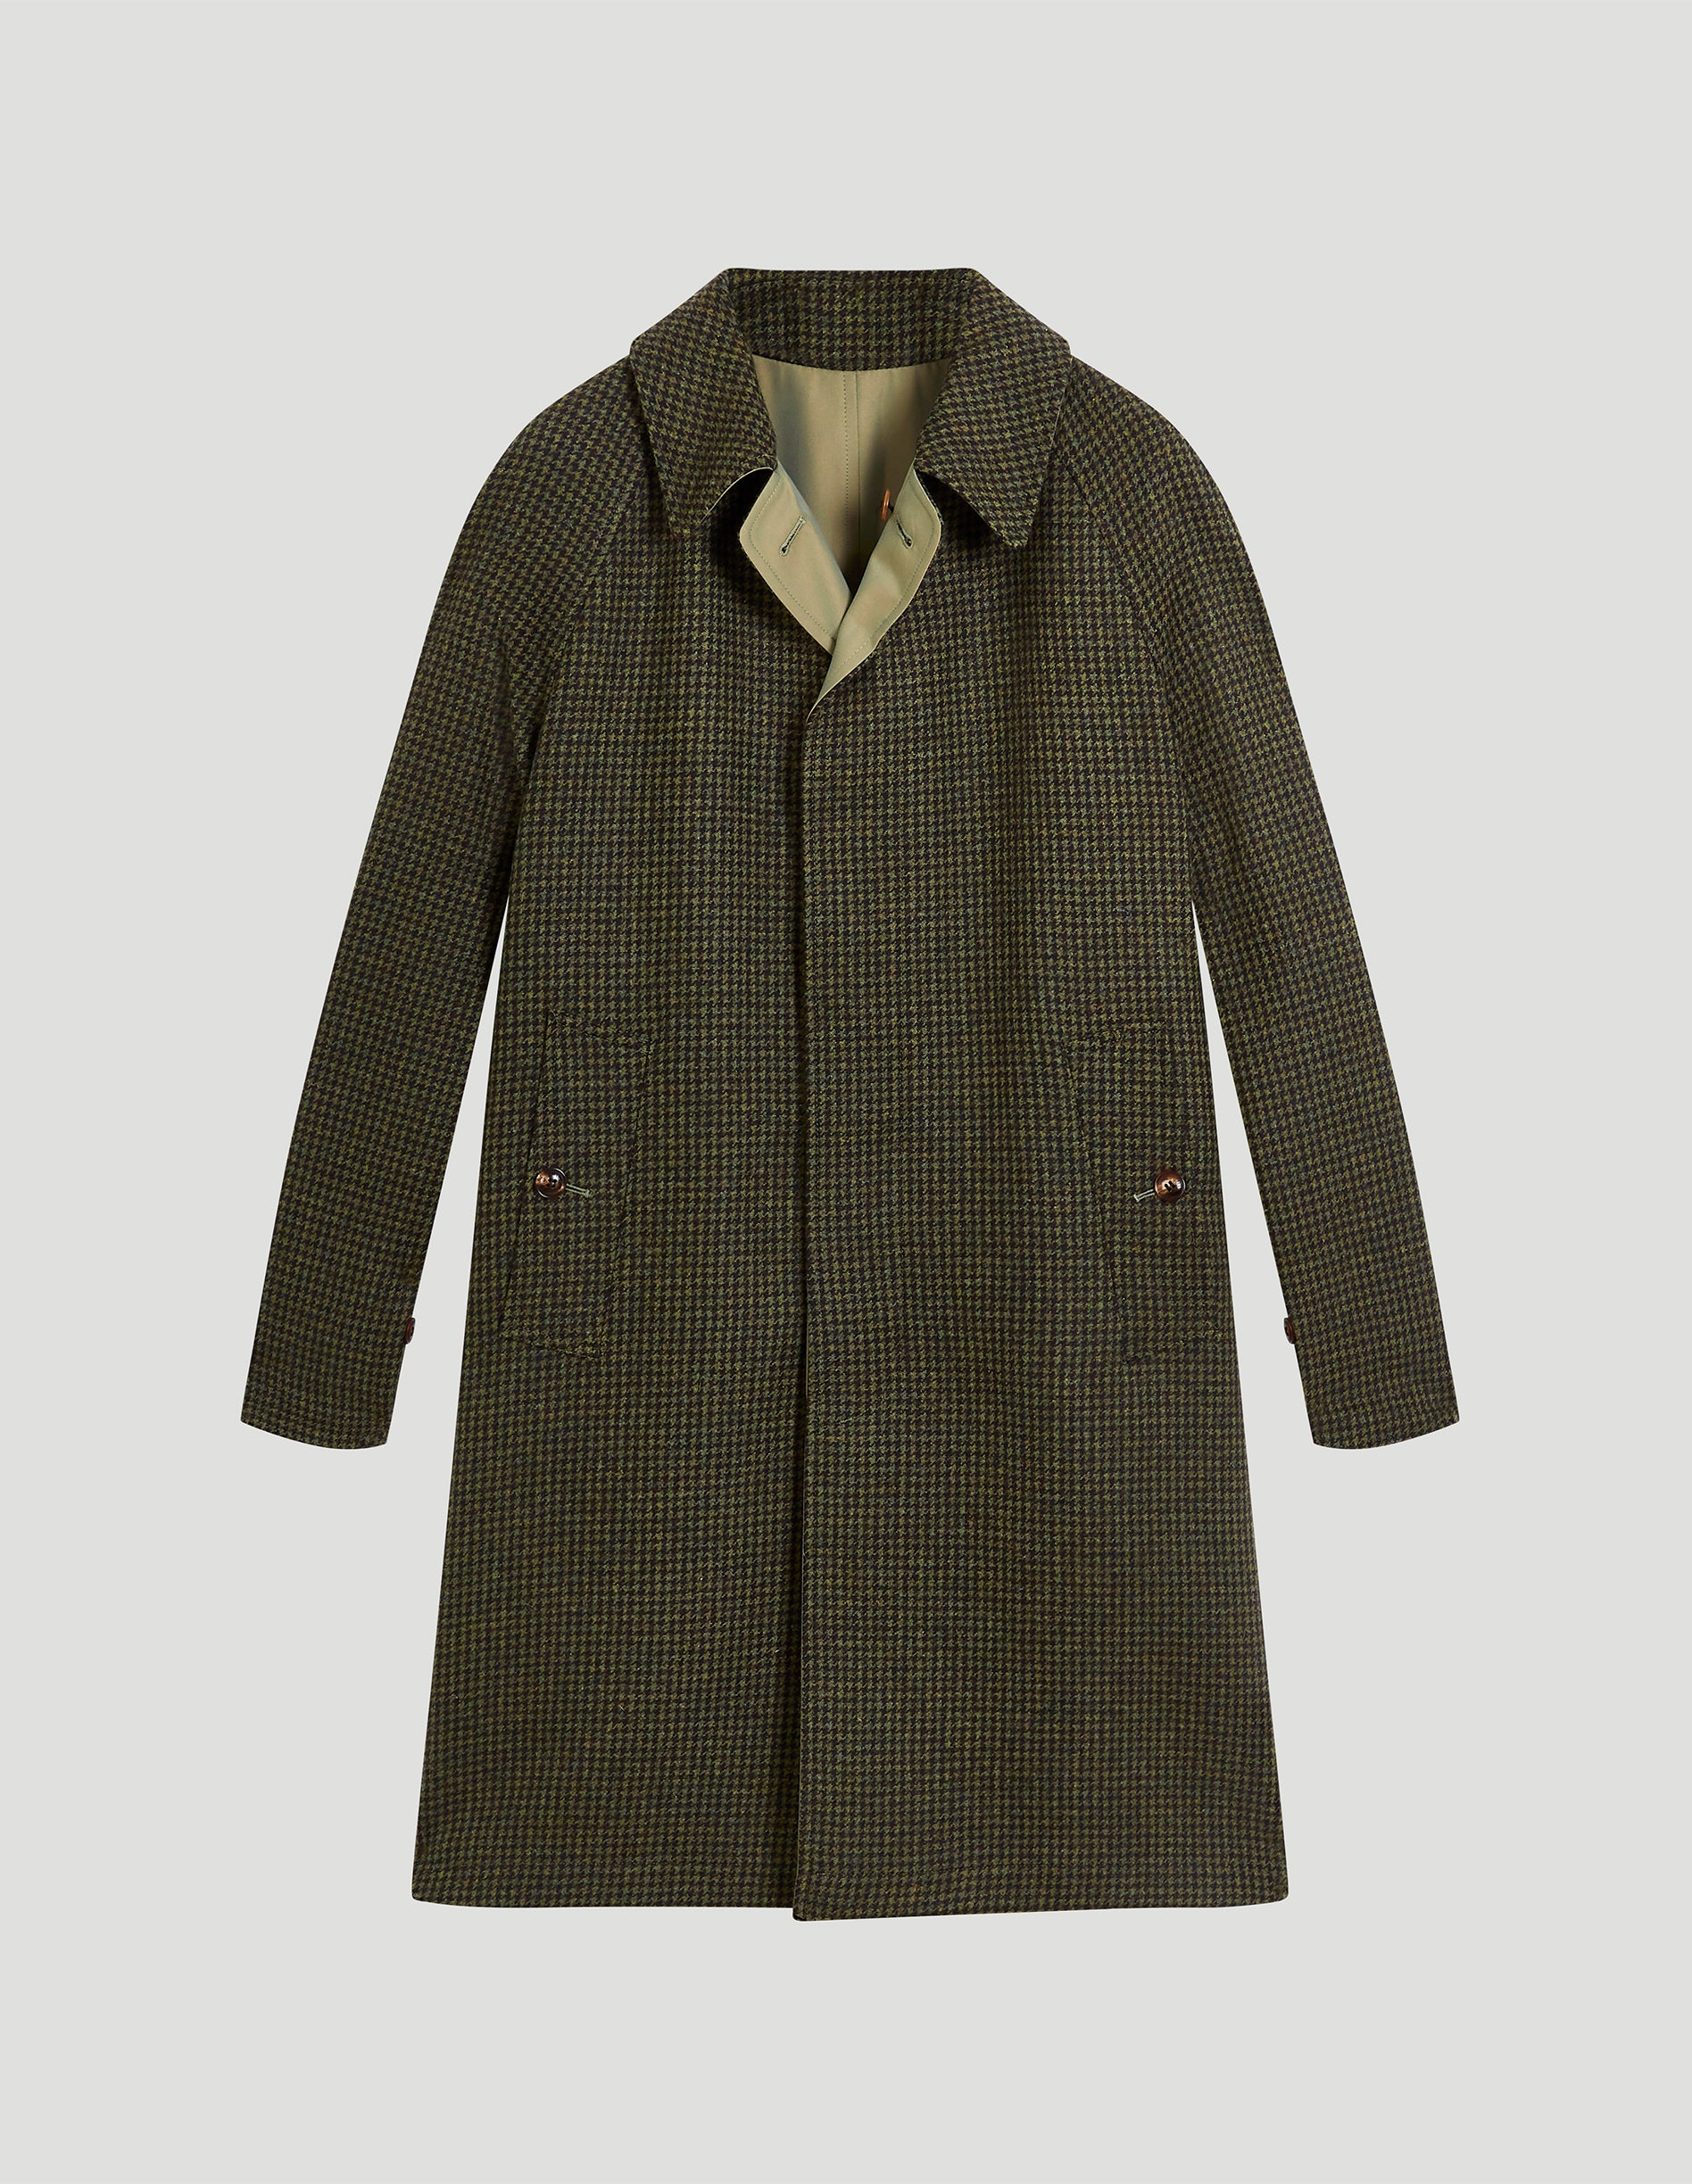 best website a05ac c0f00 Men's Luxury Coats, Jackets & Parkas with Grenfell